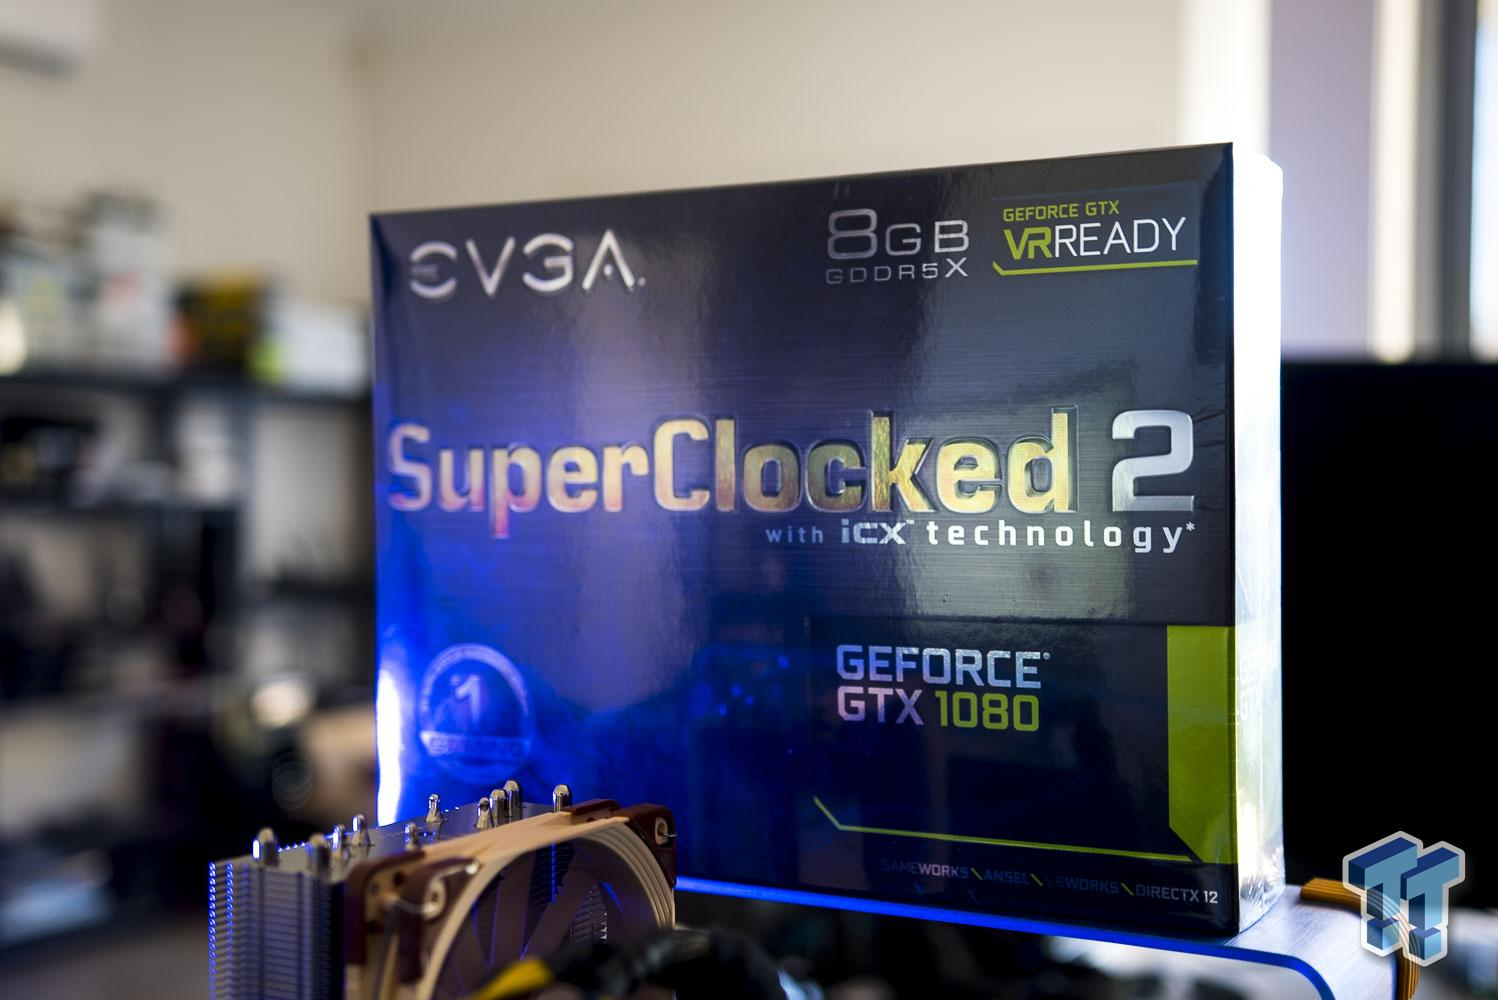 EVGA GeForce GTX 1080 SuperClocked 2 (with iCX) Review